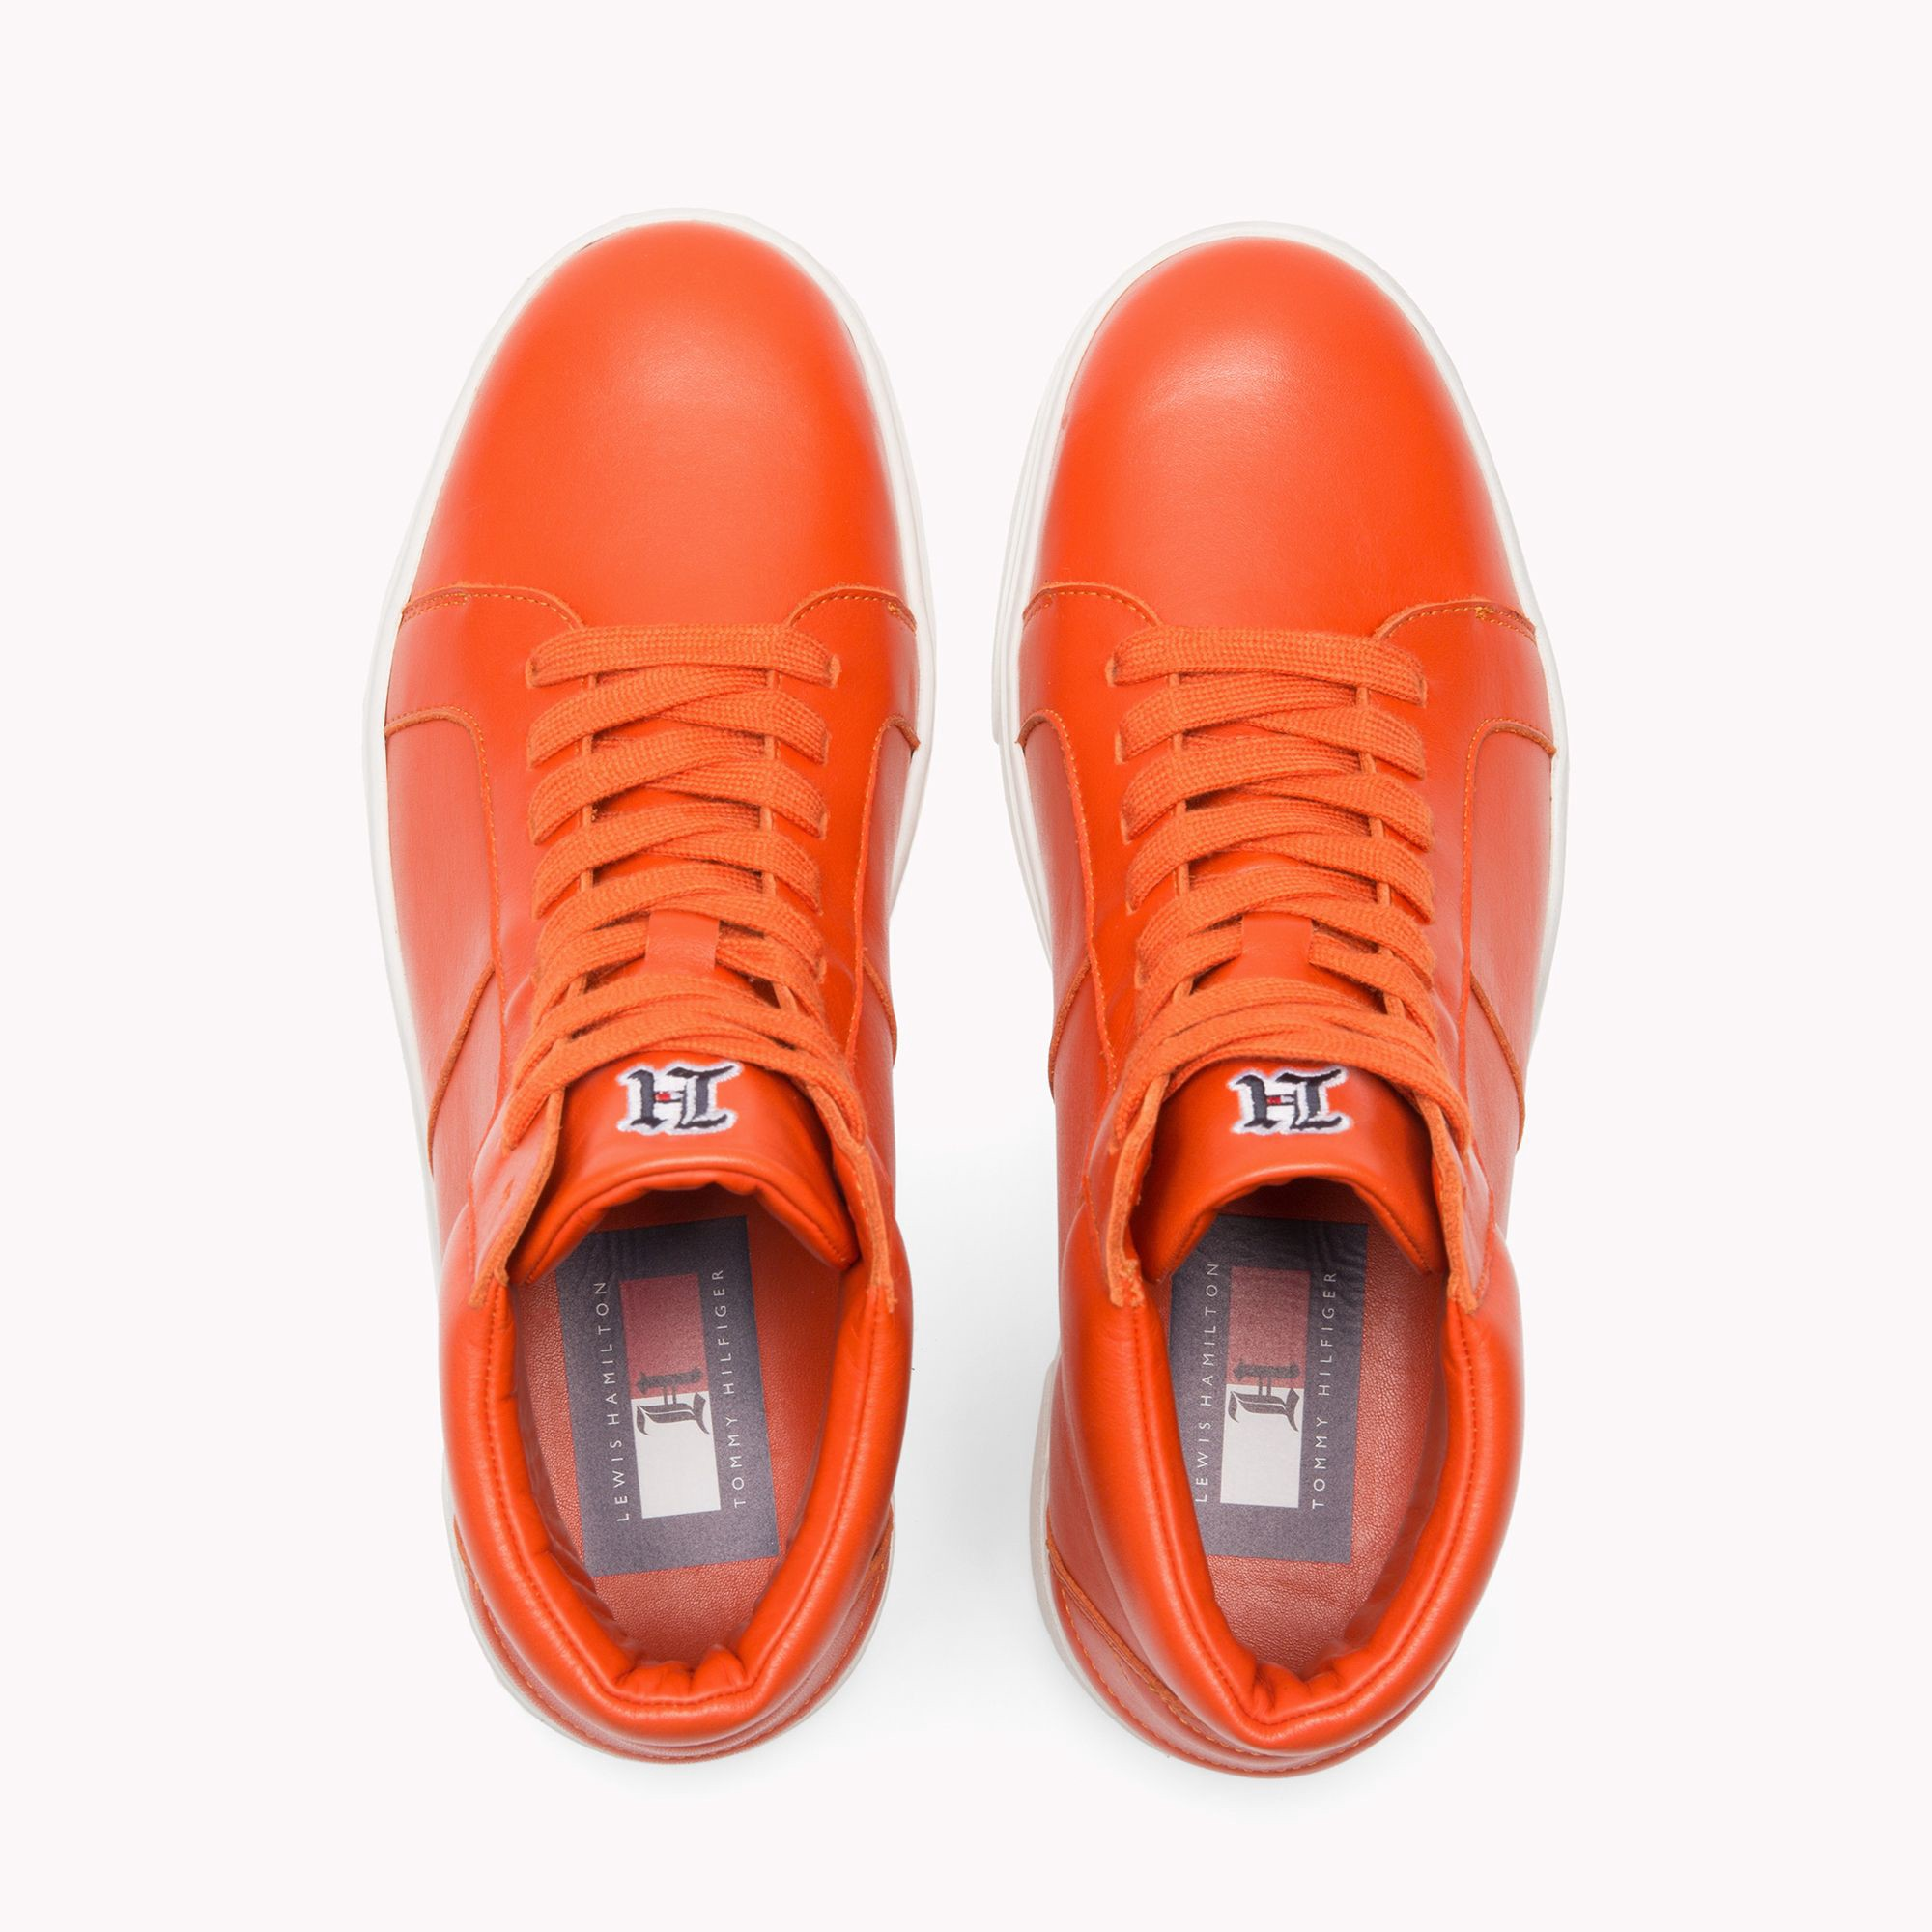 Tommy Hilfiger Sneaker by Lewis Hamilton rot | dress for